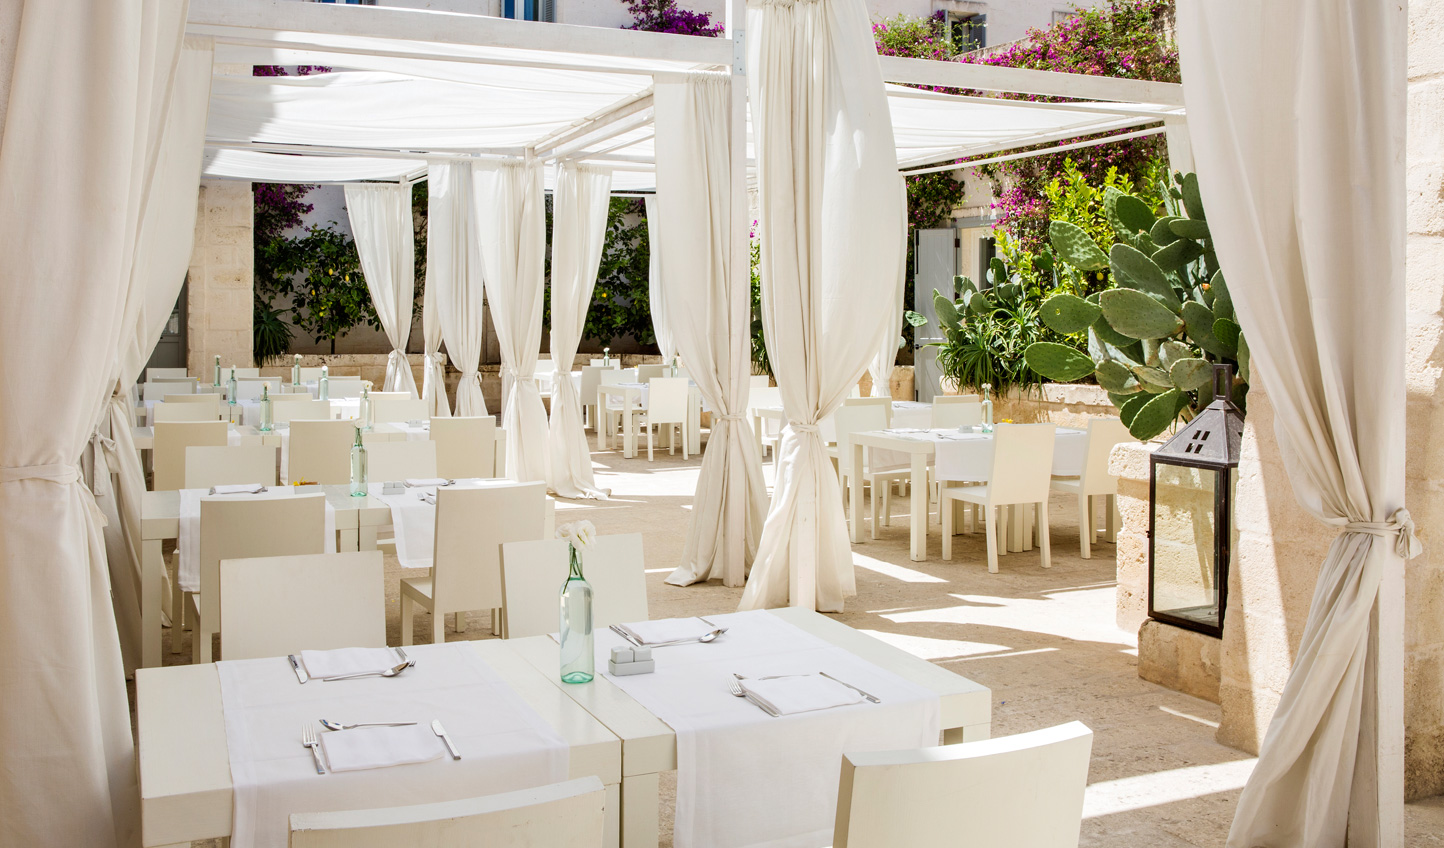 Dine on fresh seafood and Italian flavours